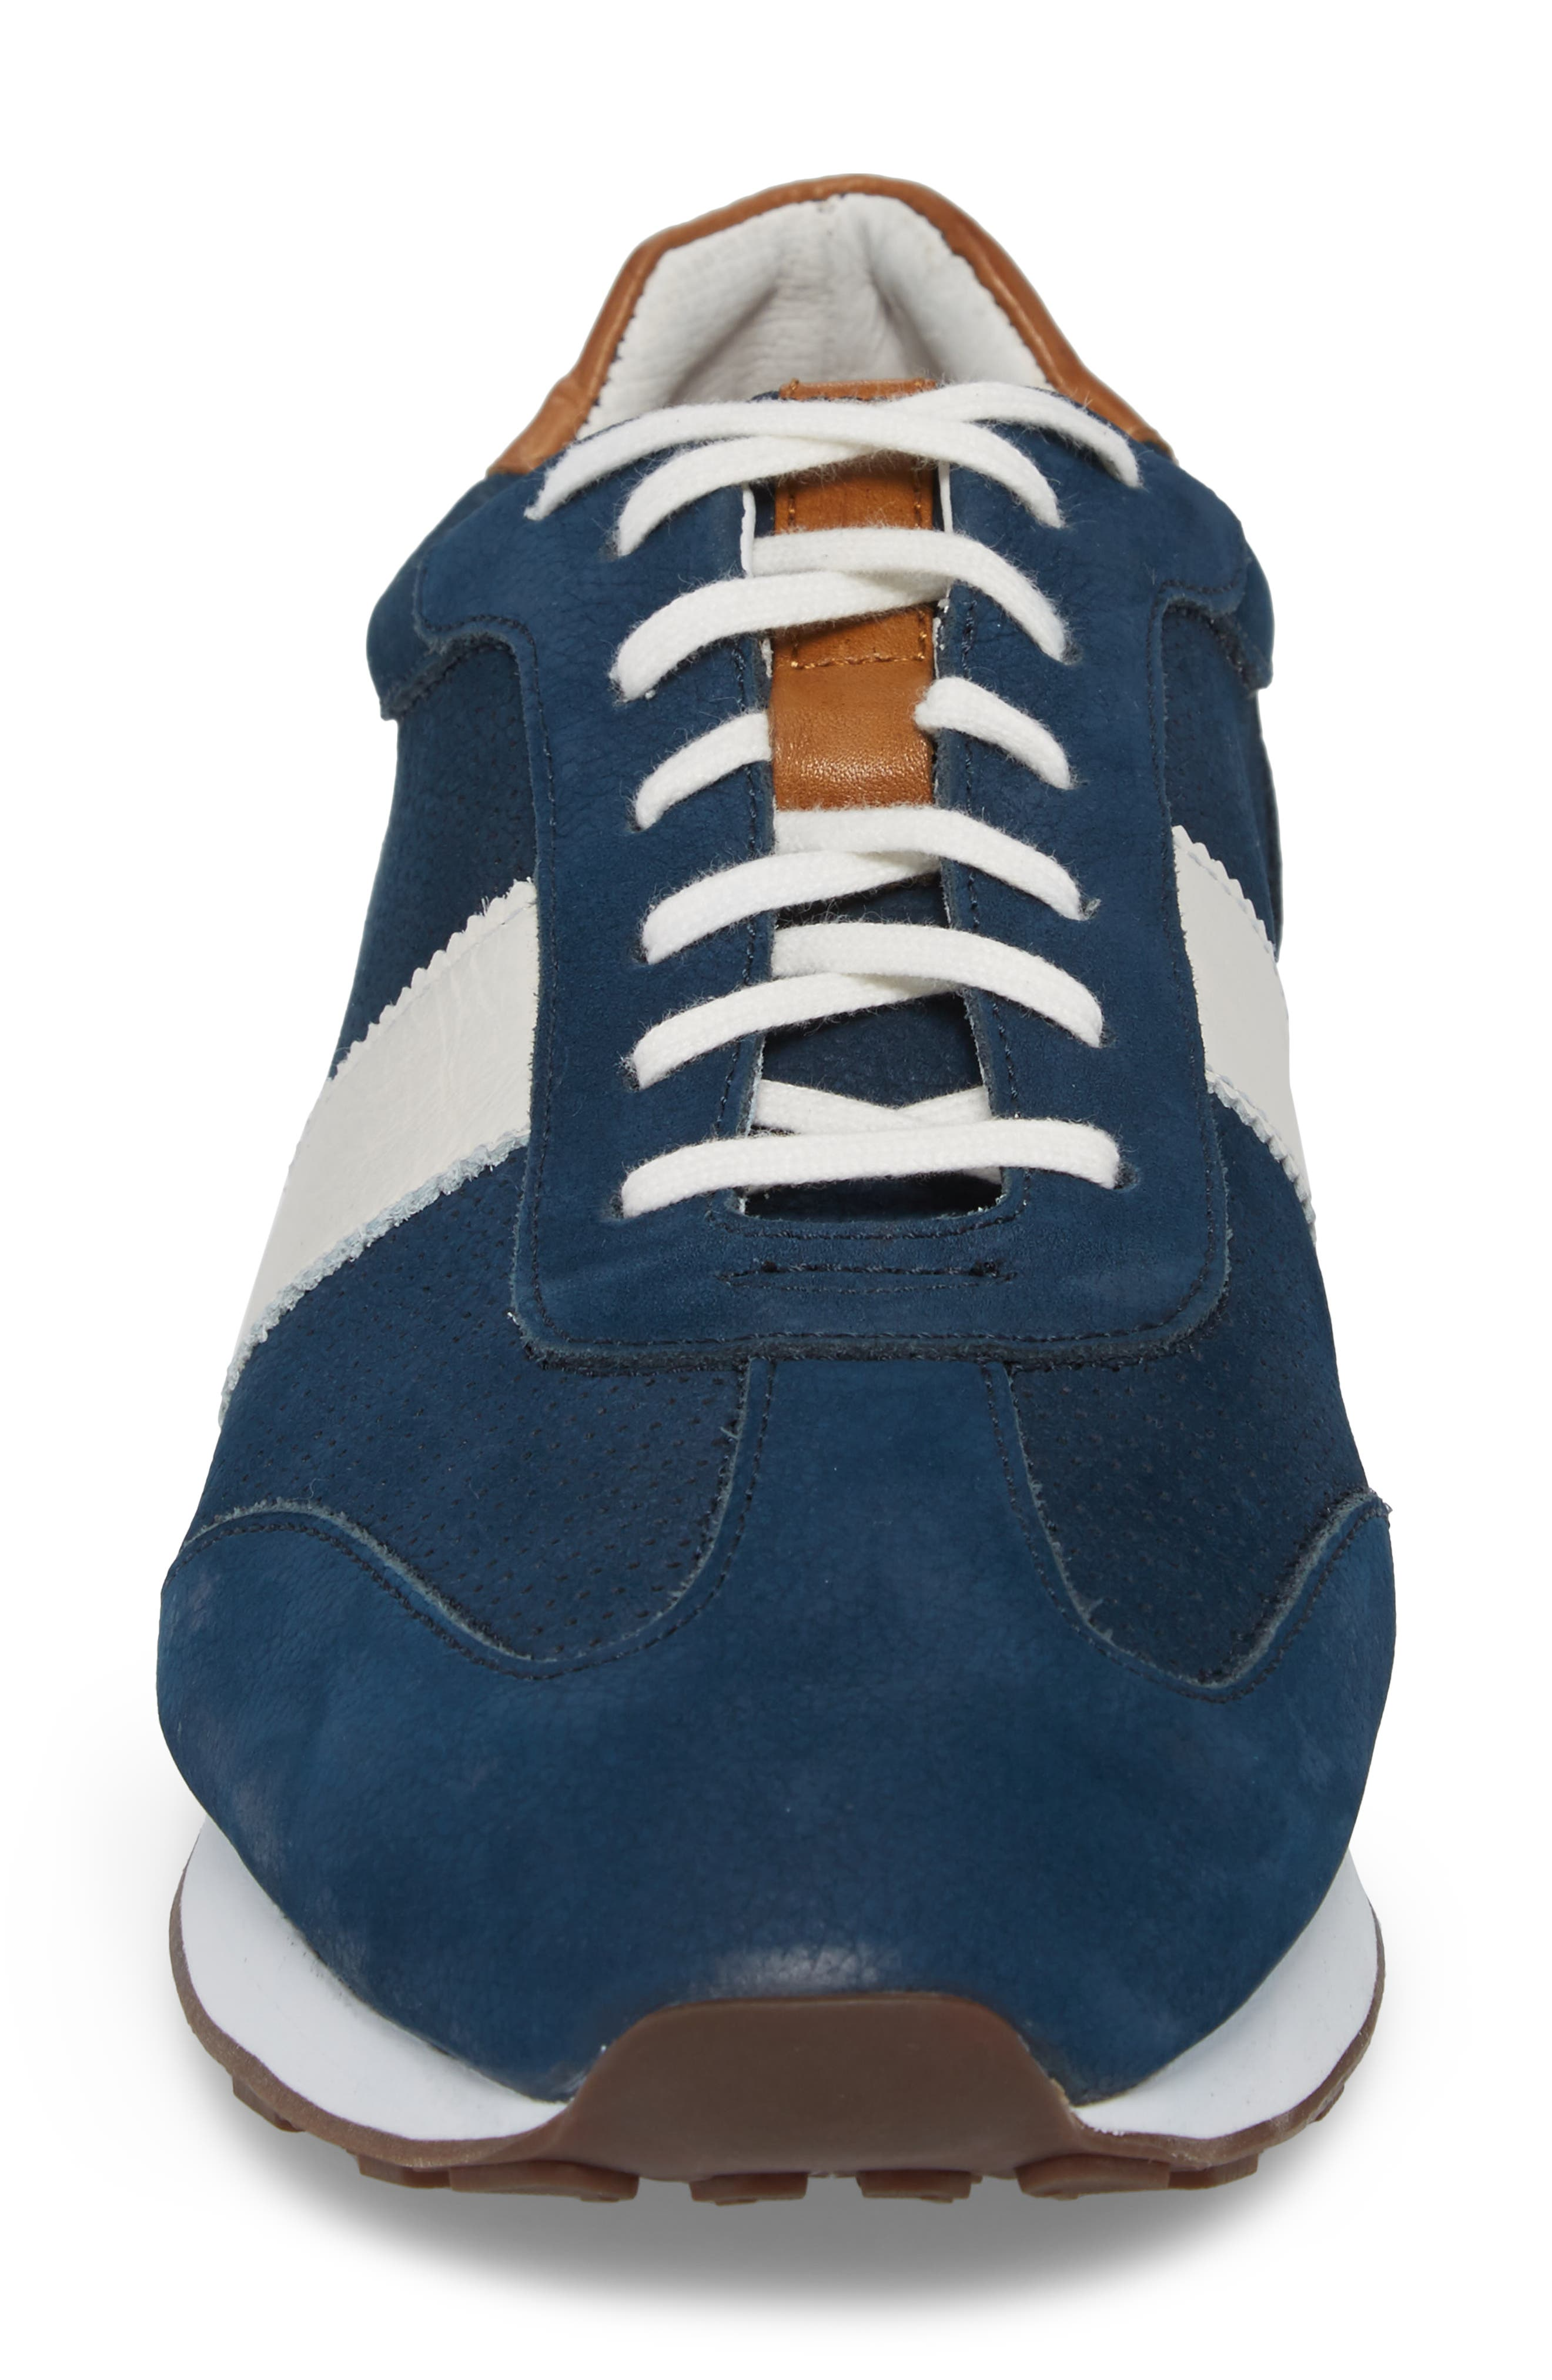 Malek Perforated Low Top Sneaker,                             Alternate thumbnail 4, color,                             Navy Nubuck Leather